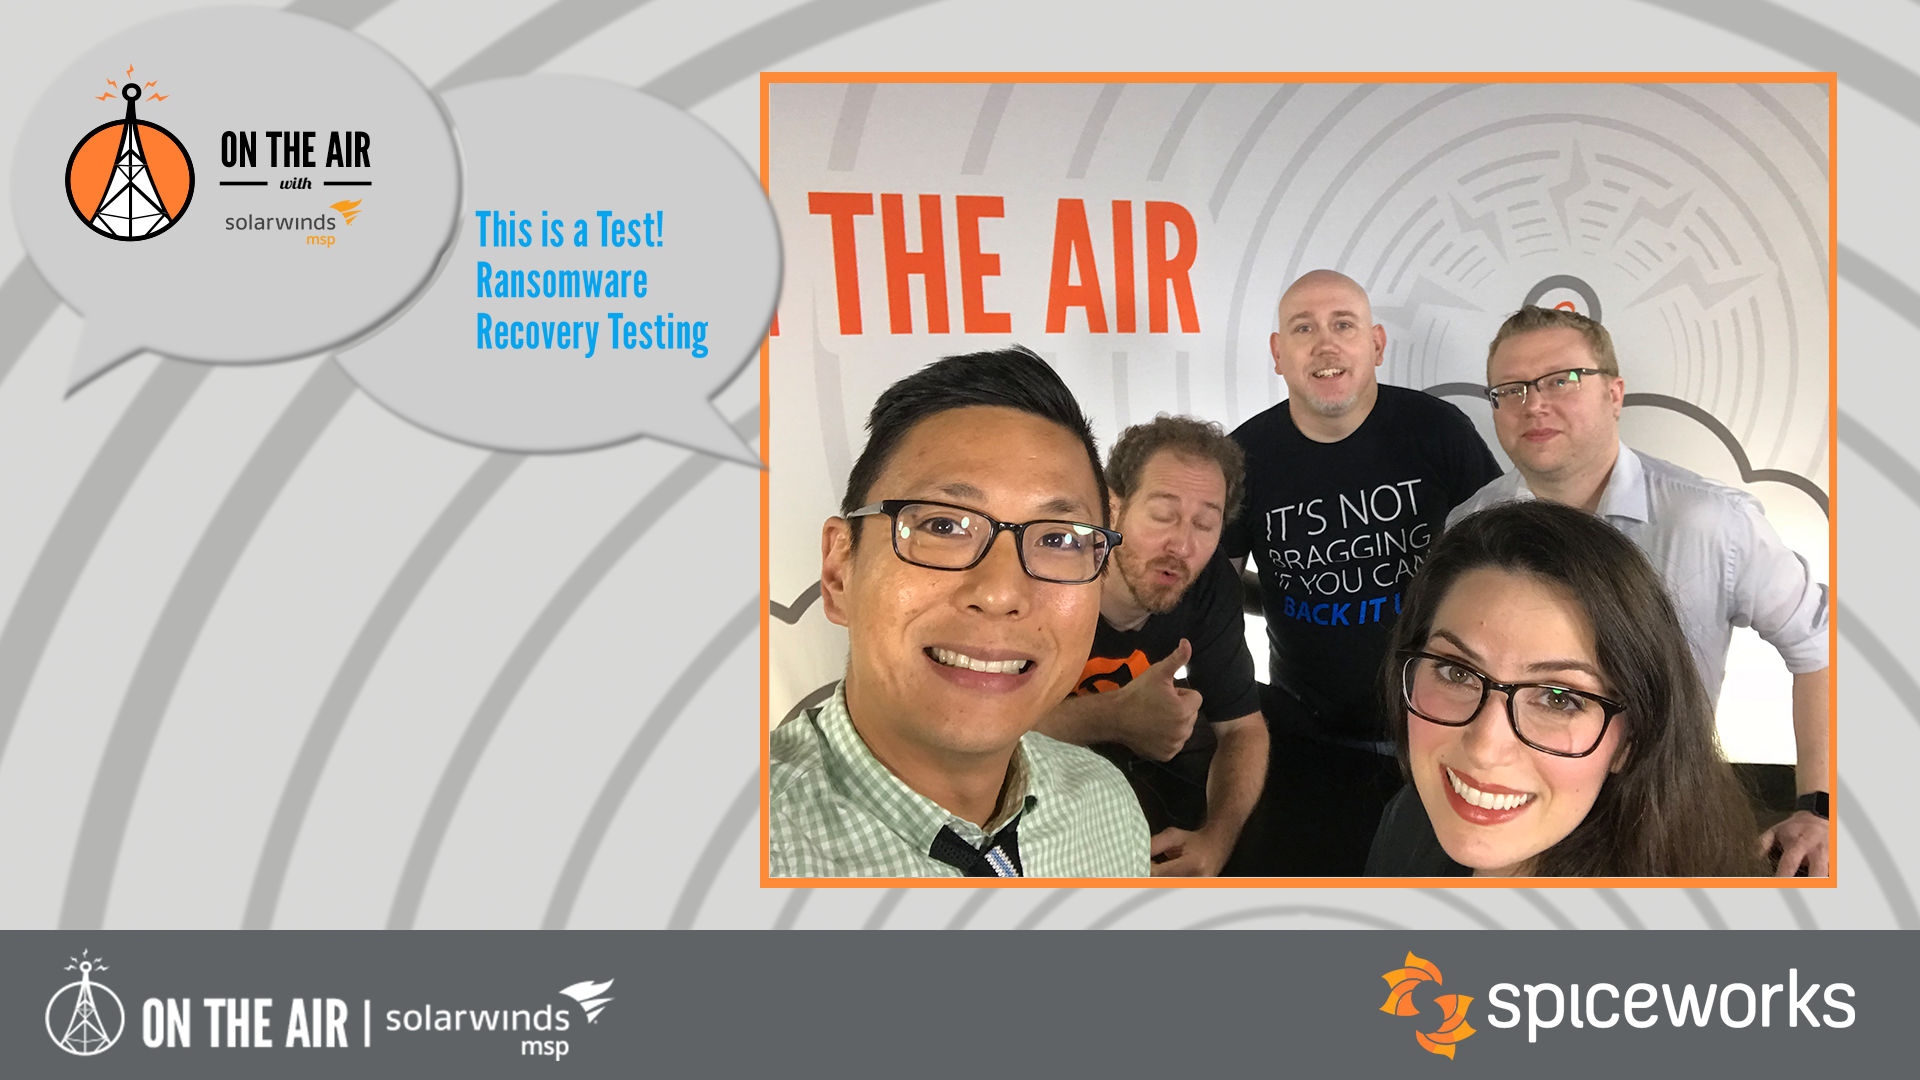 Videos from On The Air - Spiceworks